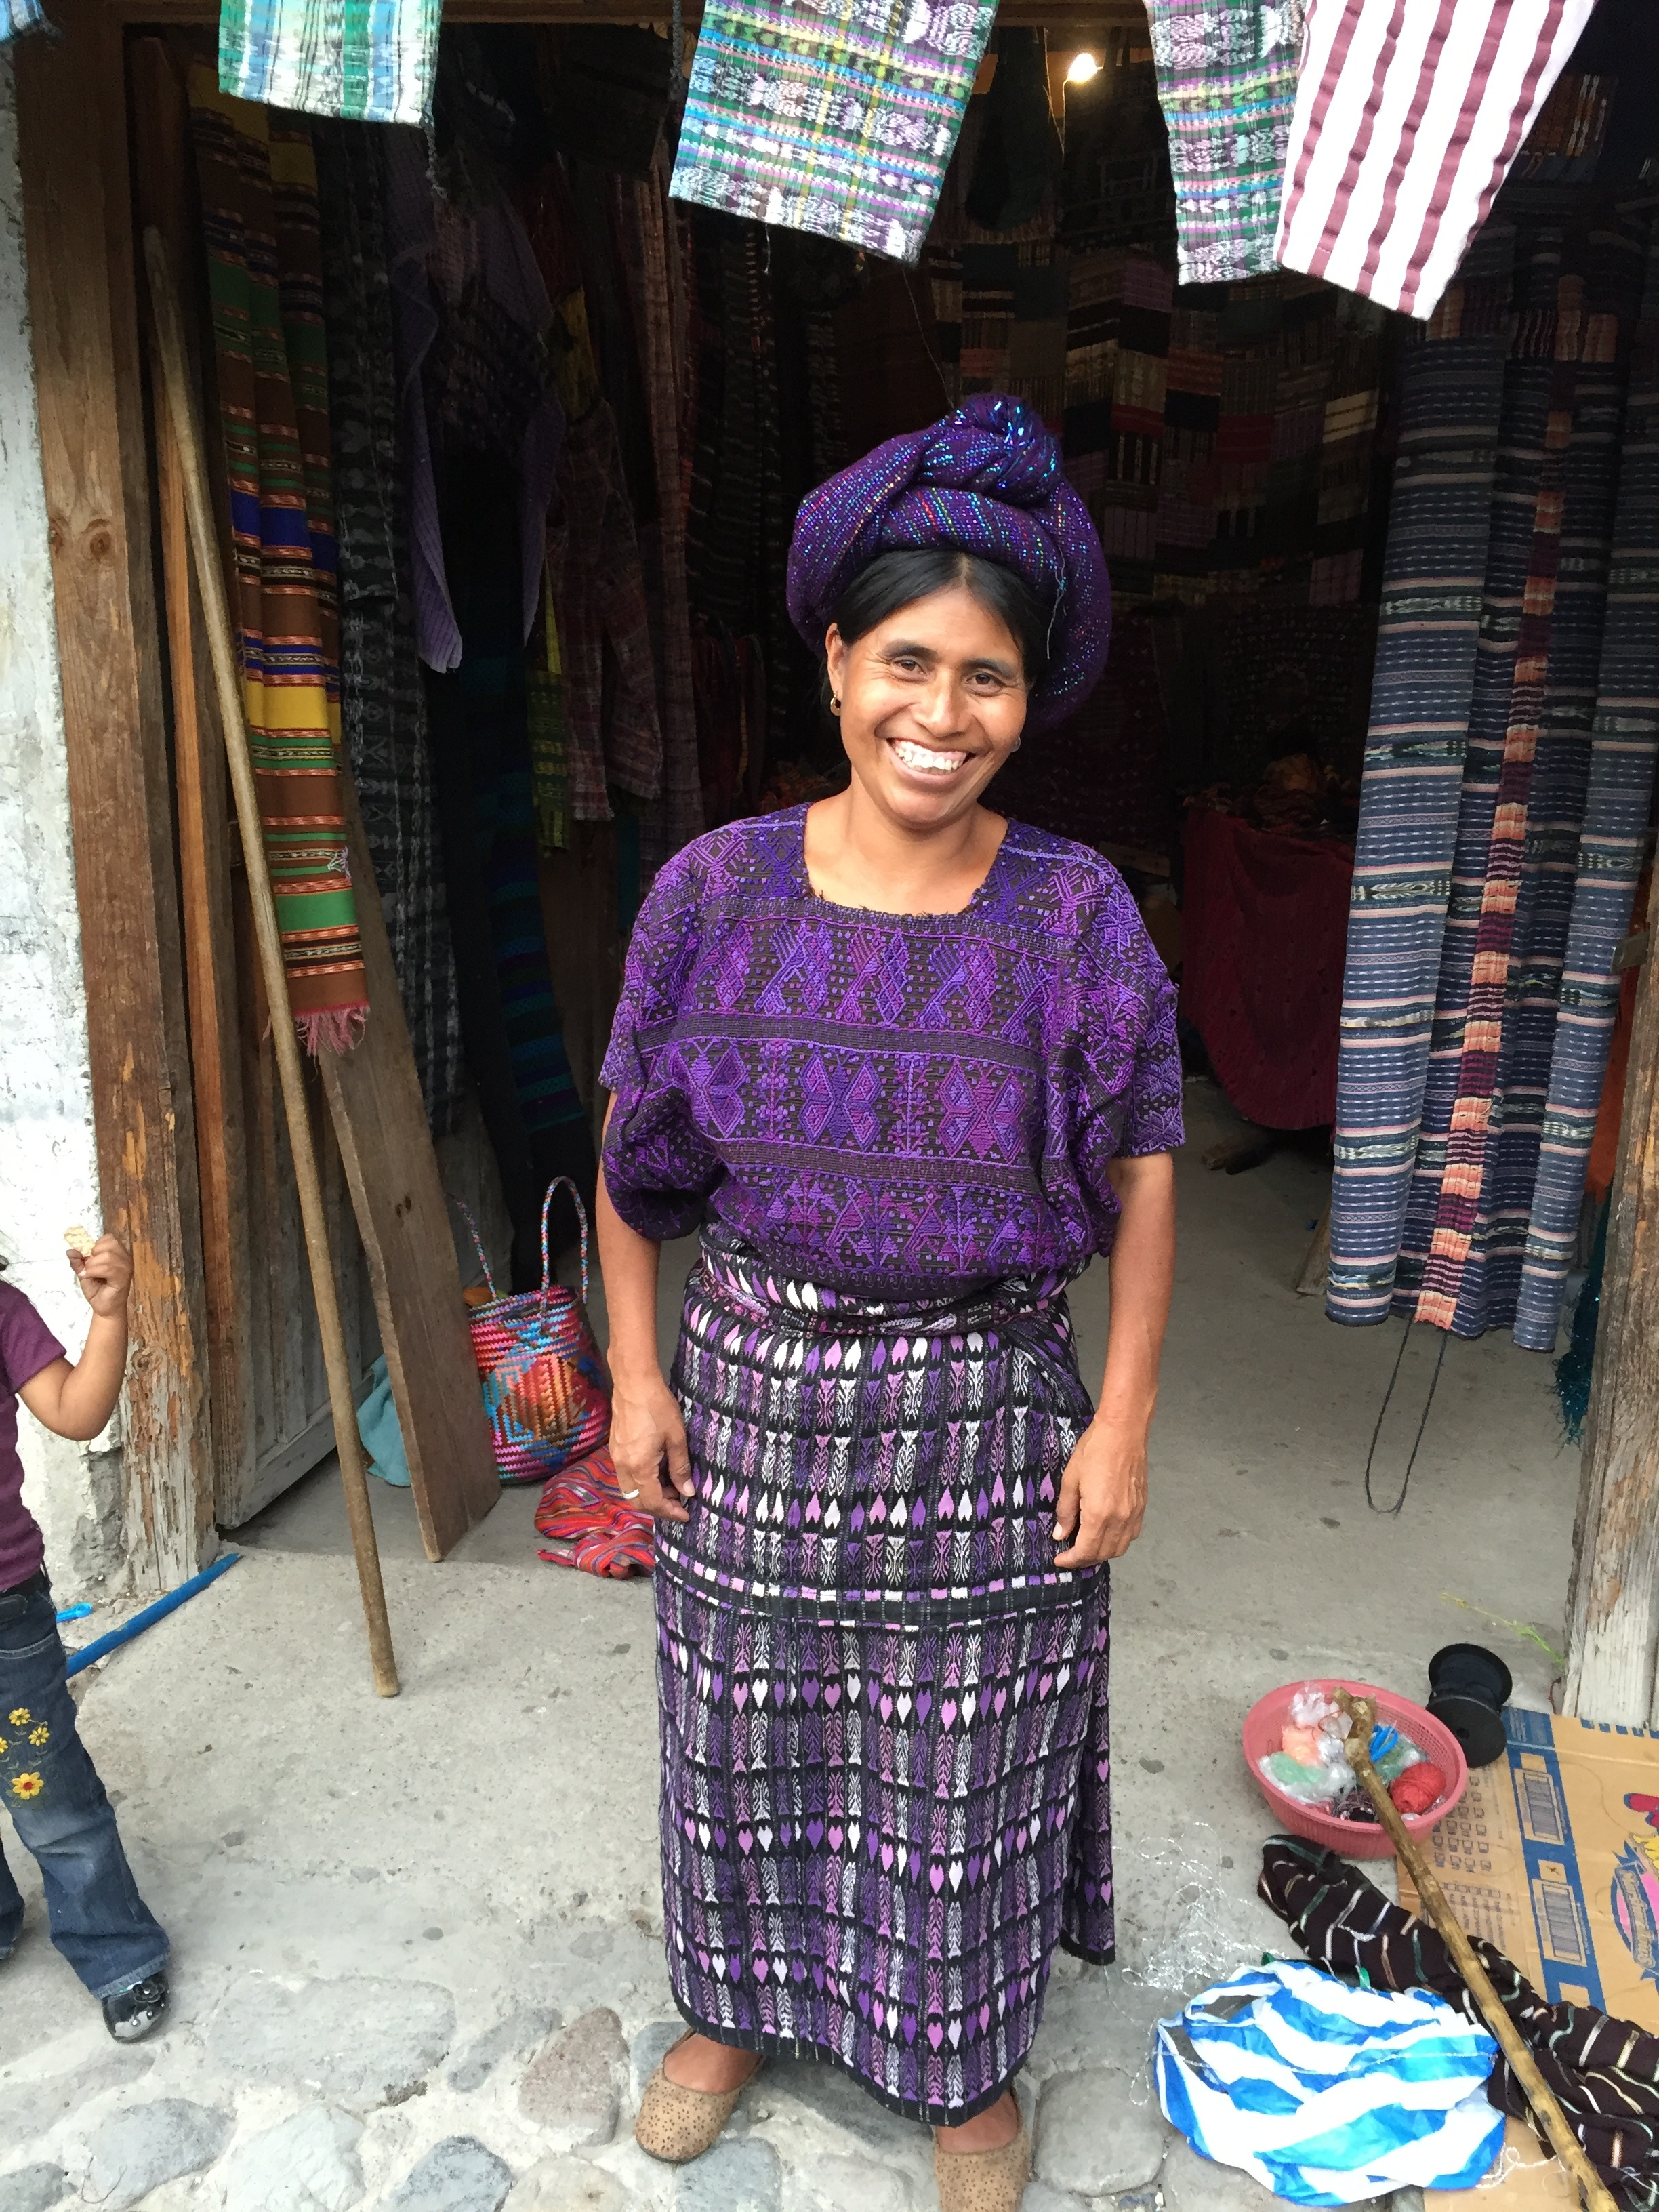 This woman in Pana sold beautiful old hand-woven textiles and hand embroidered huipils, like the one she is wearing. I bought one from her!